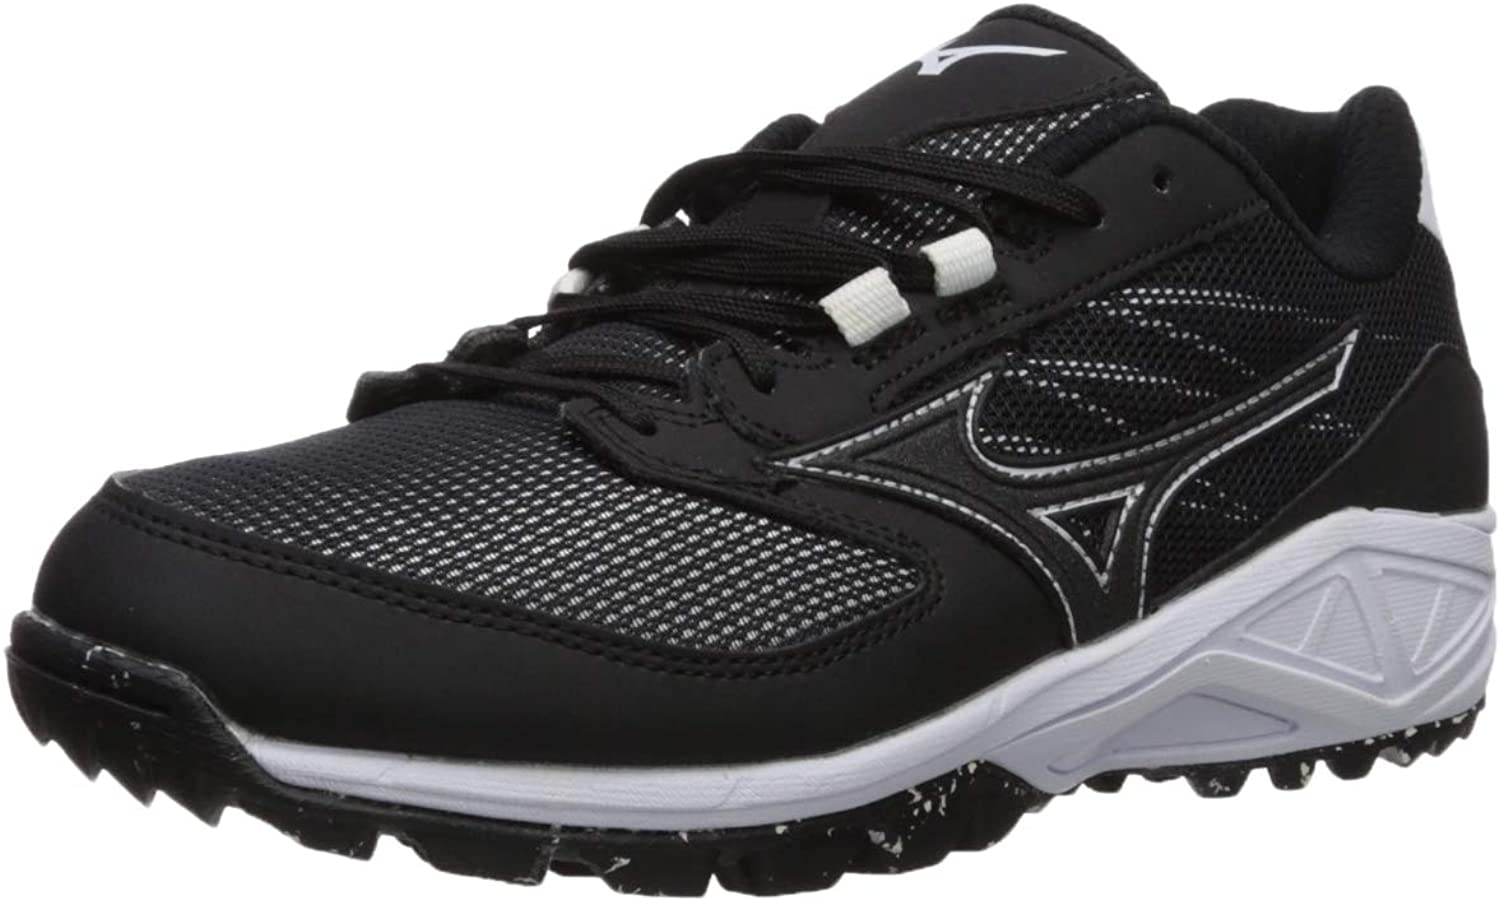 Mizuno Womens Dominant All Surface Turf shoes Softball shoes